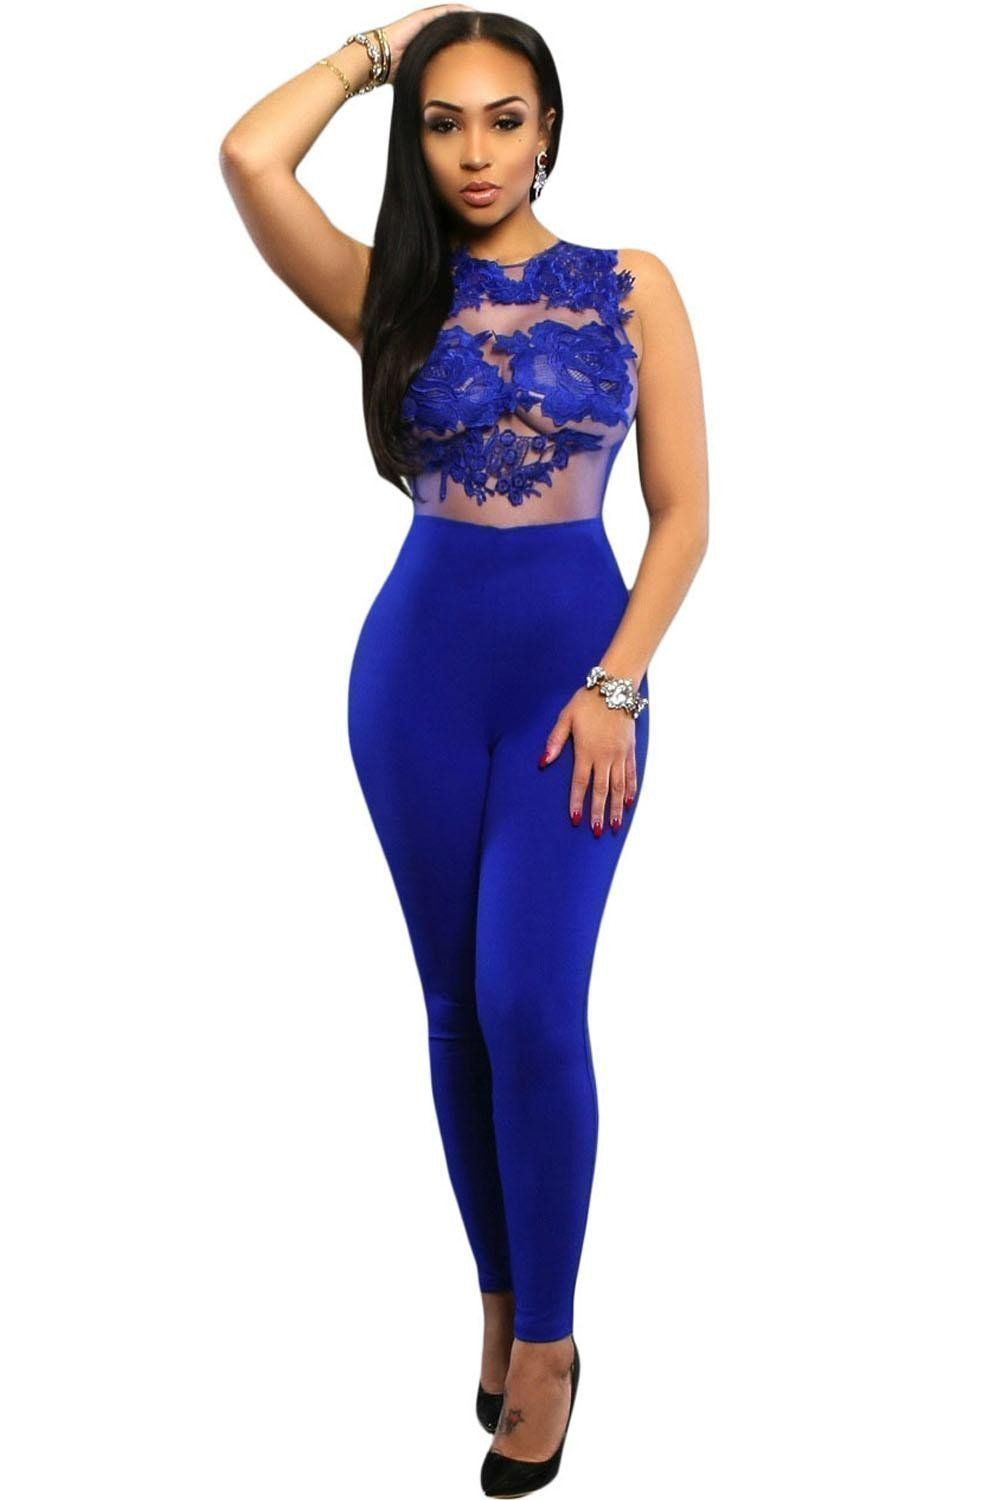 619a3555bc6 Women Jumpsuits Sexy Forla Lace Transparent Top